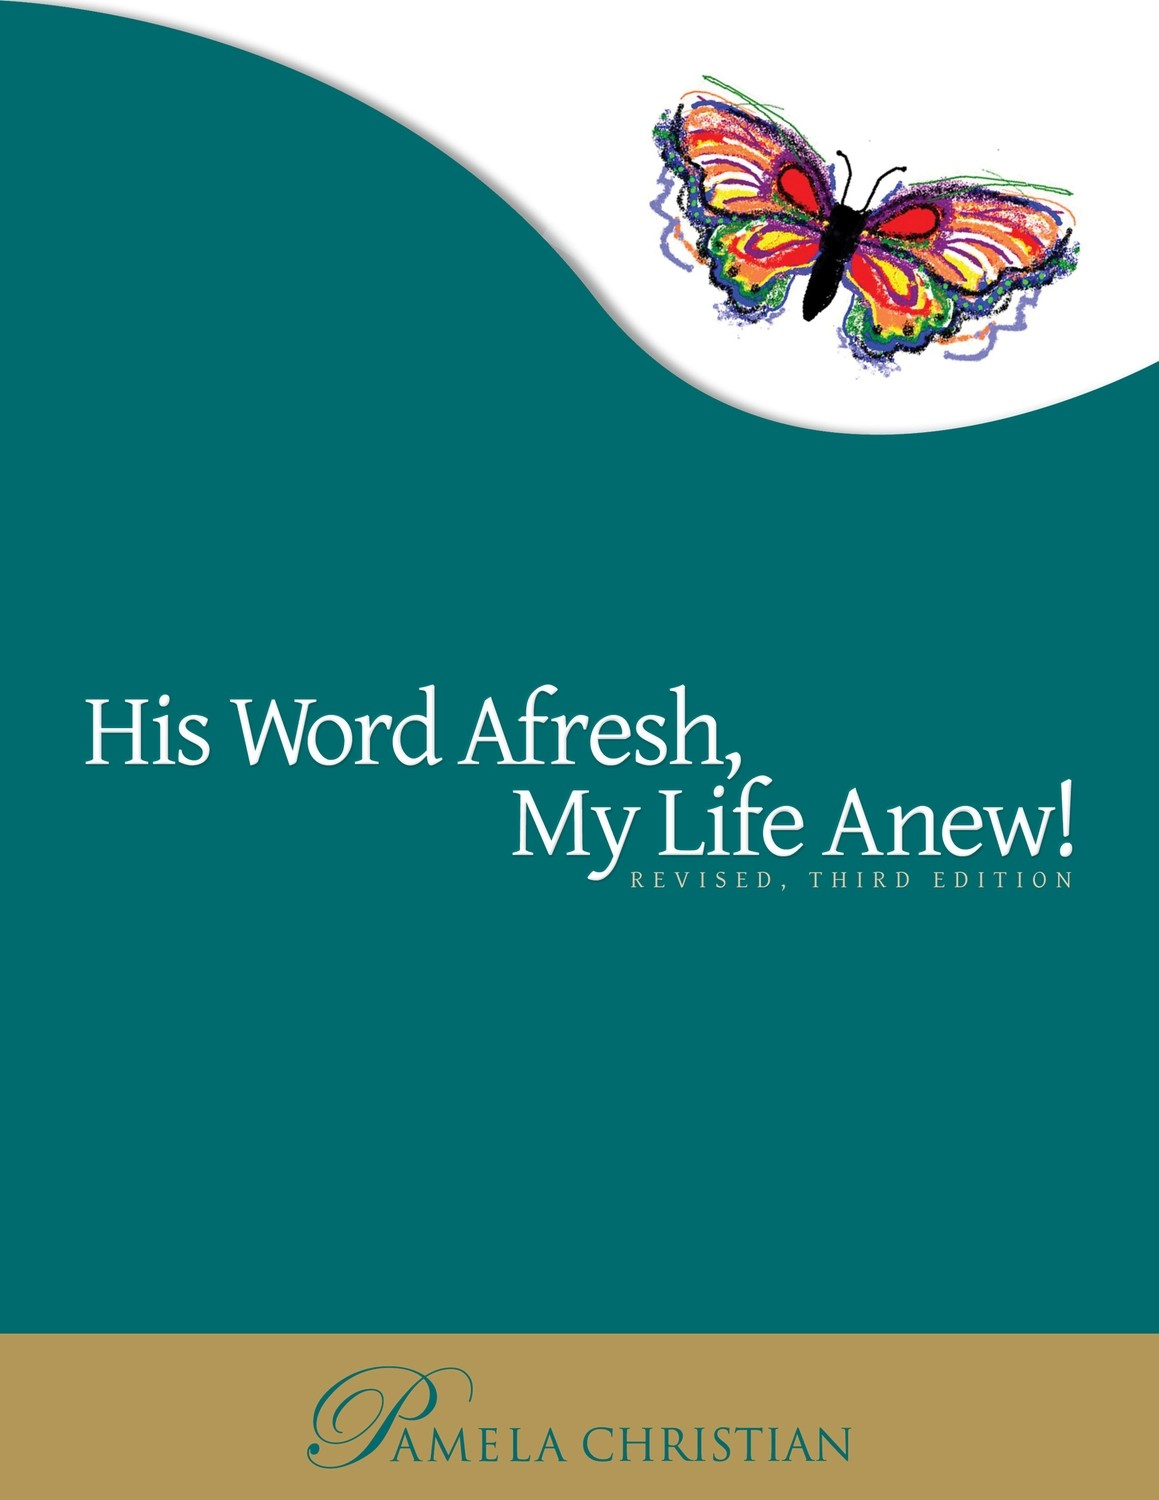 His Word Afresh, My Life Anew!